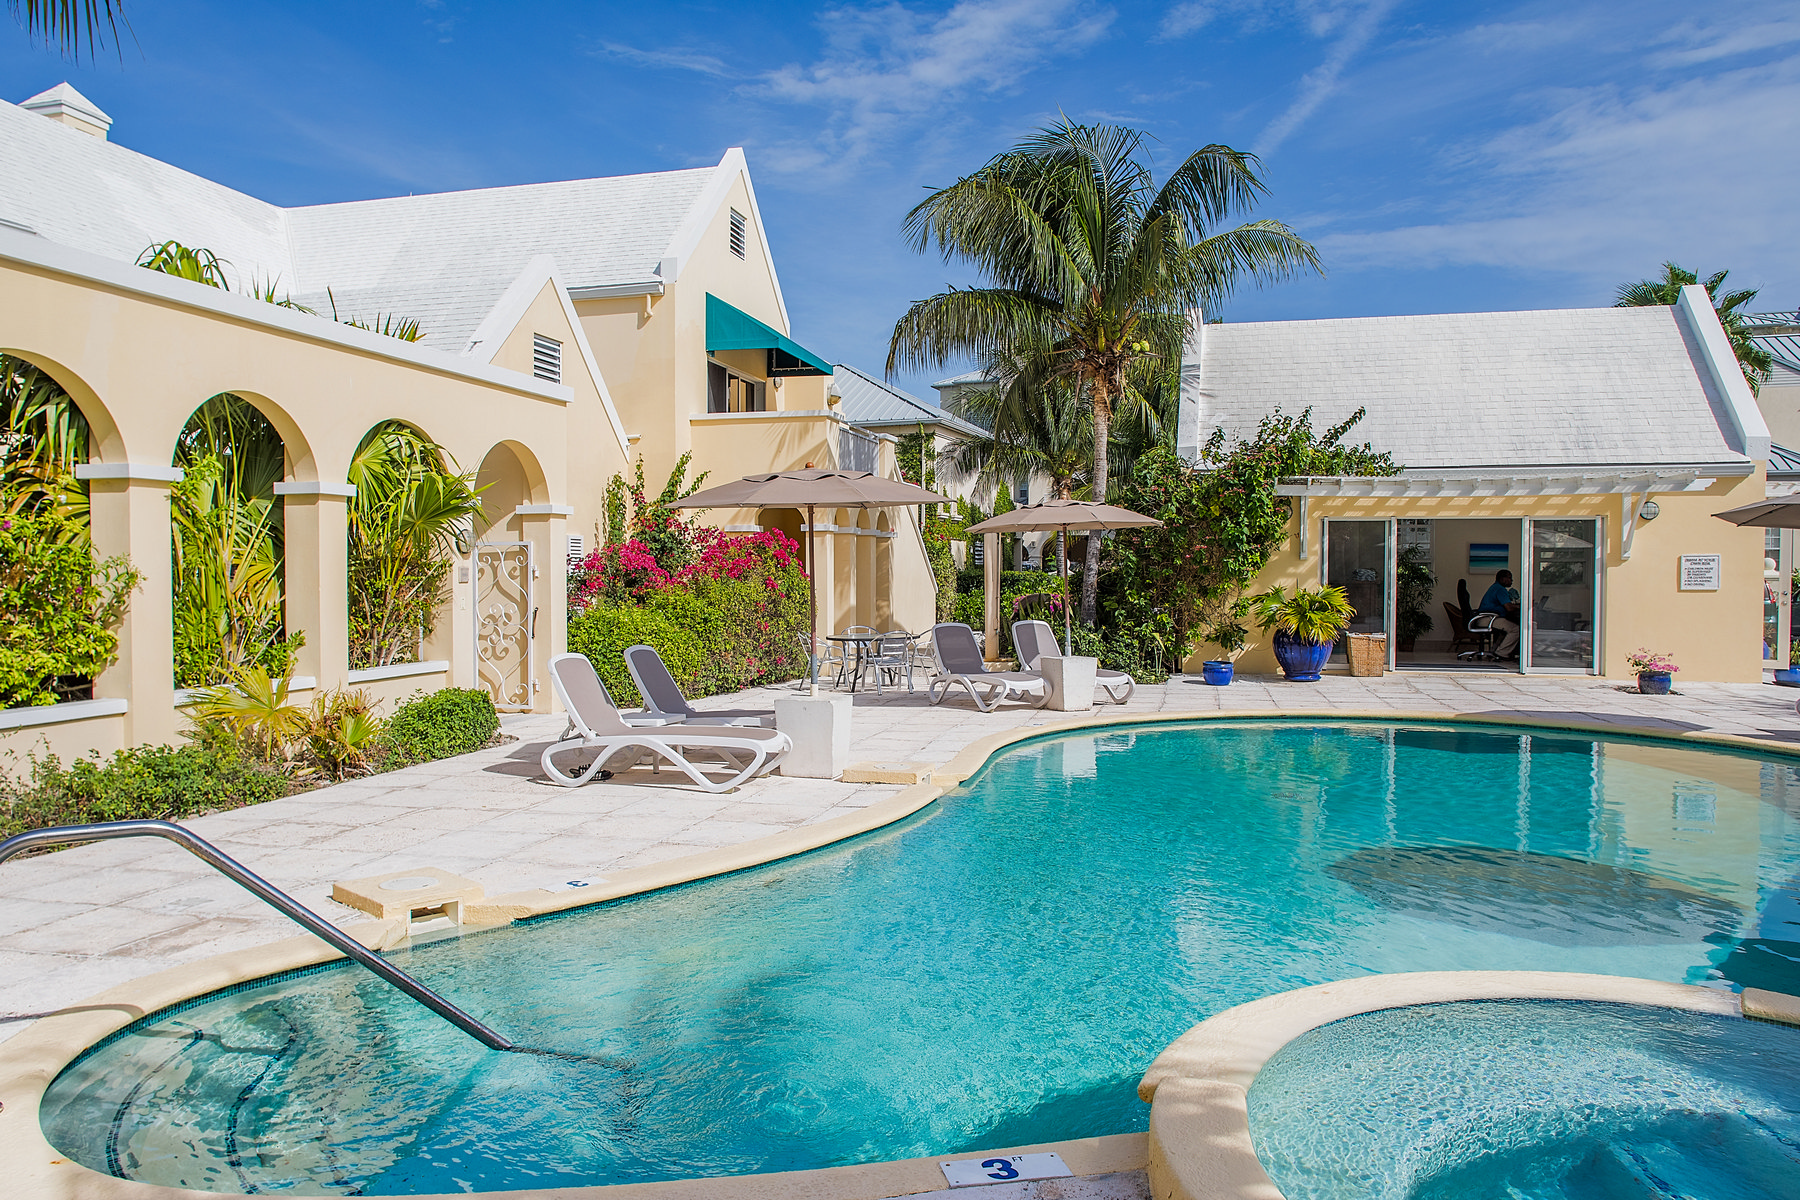 Other Residential for Sale at Reef Residences Grace Bay, Turks And Caicos Islands